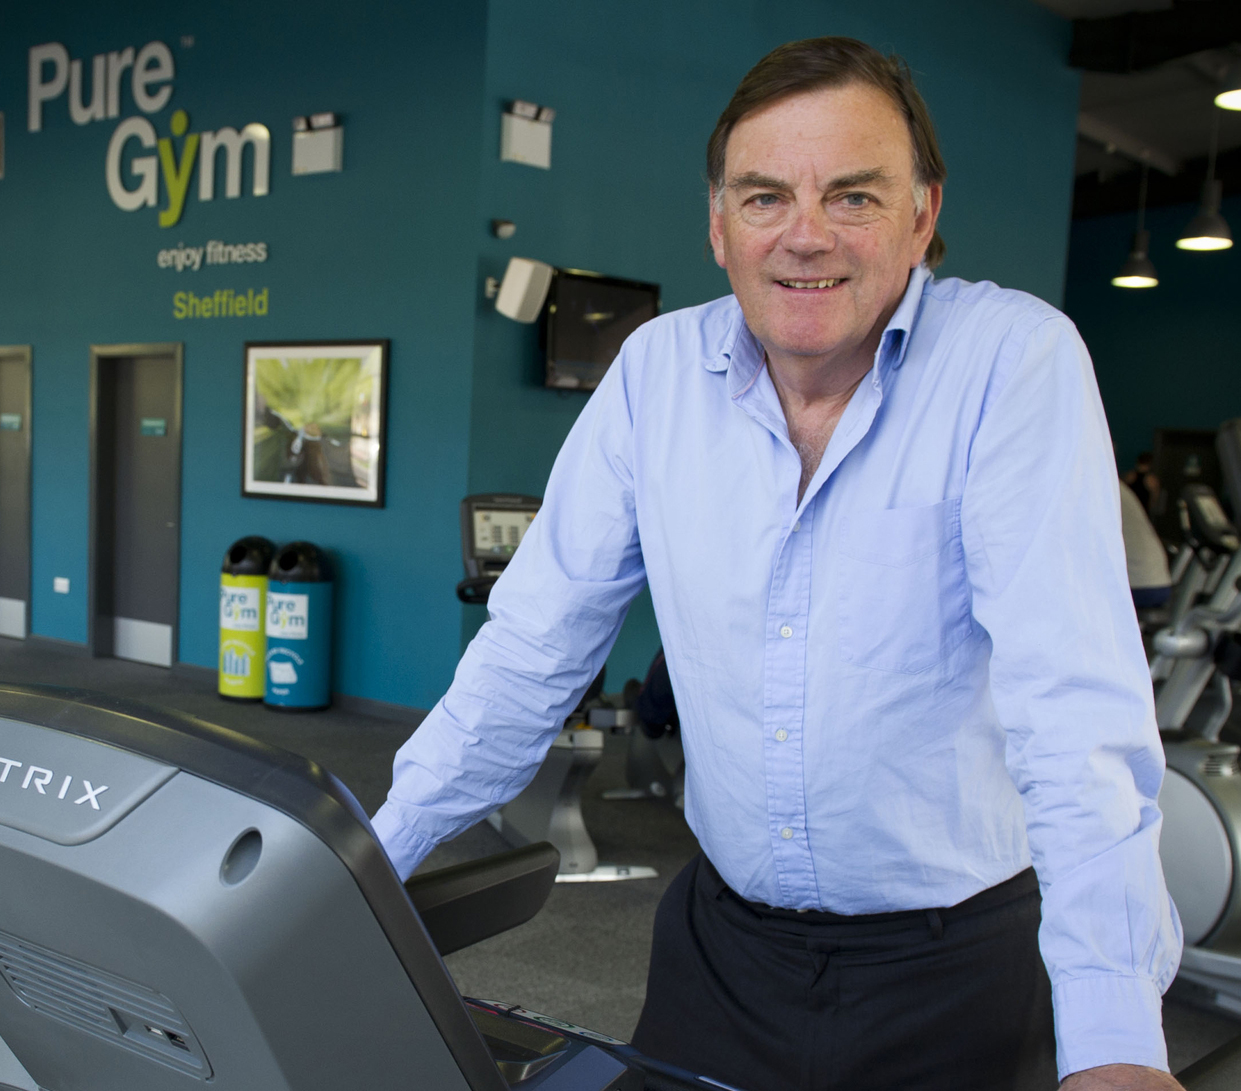 Pure Gym to push forward with expansion despite failed merger